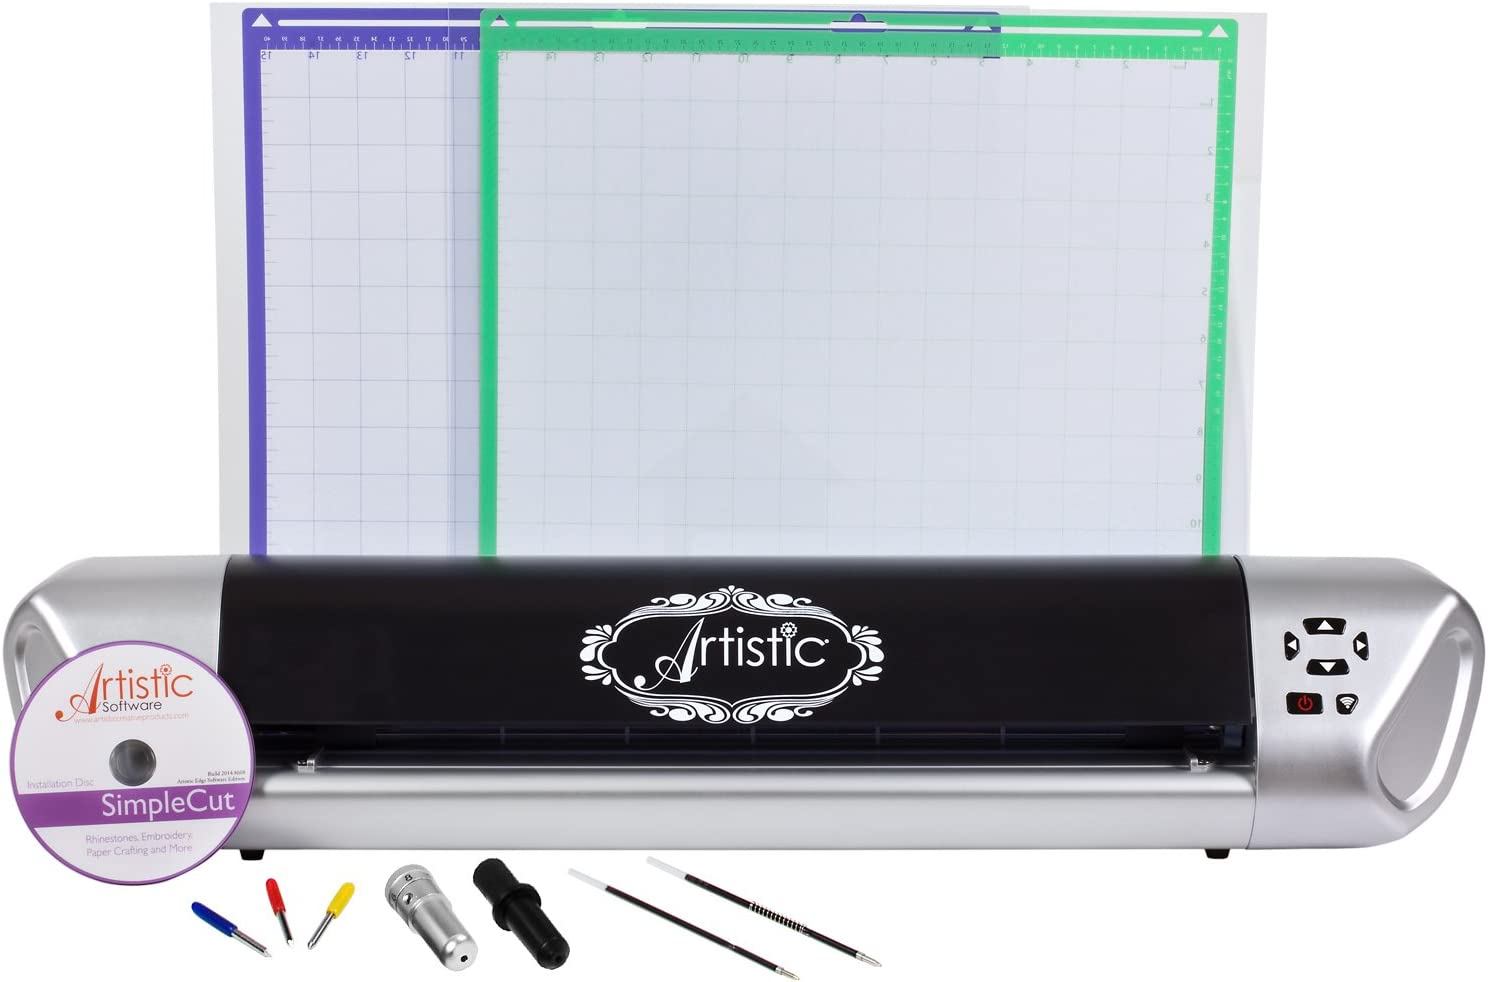 Janome Artistic Edge Digital Cutter, 15-inch